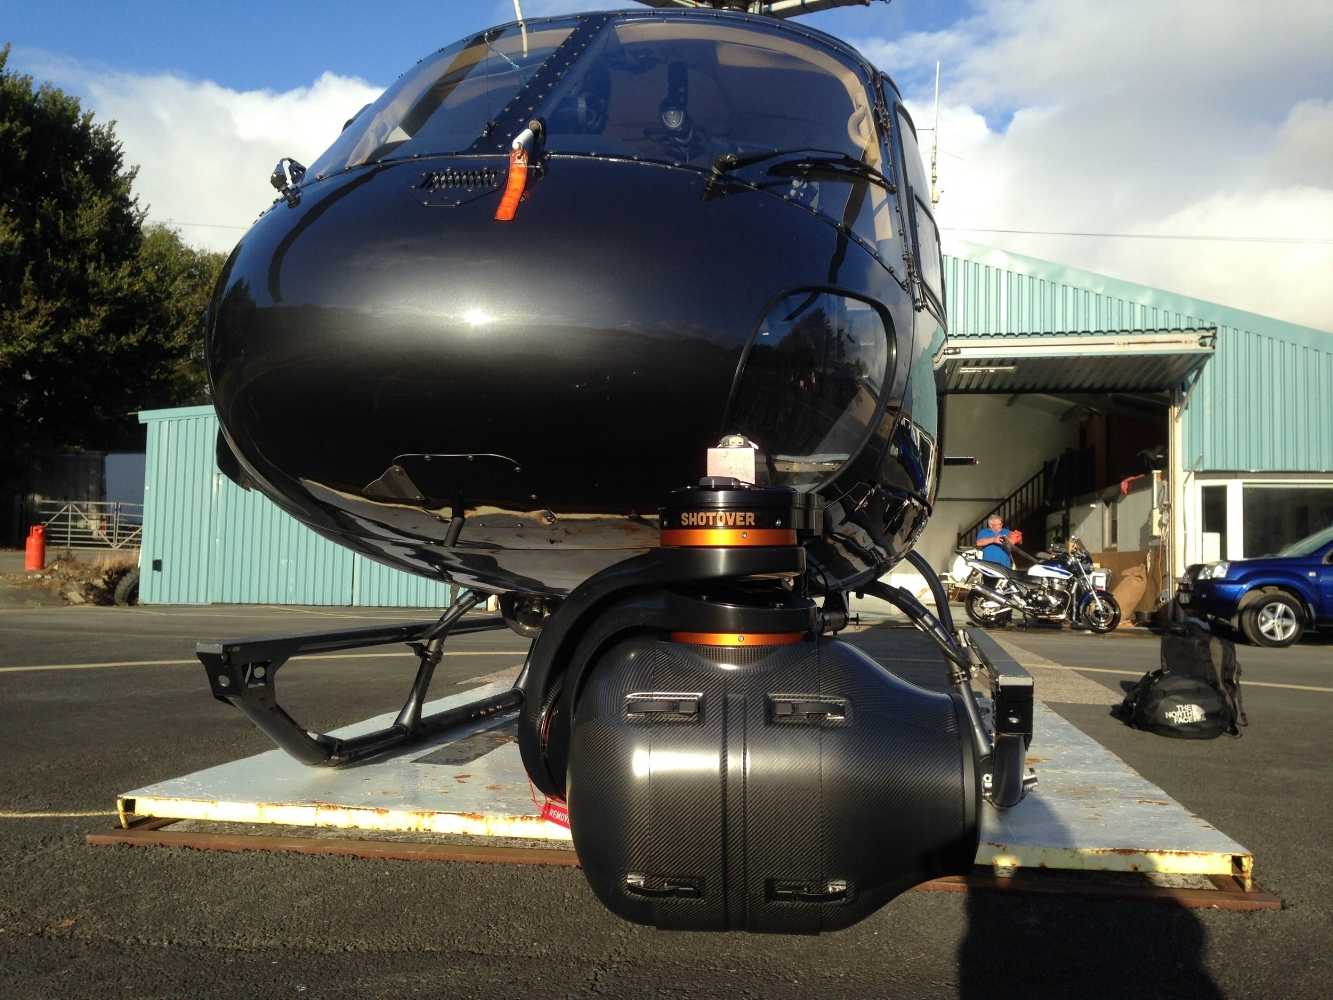 Shotover F1 on 350B2 Helicopter